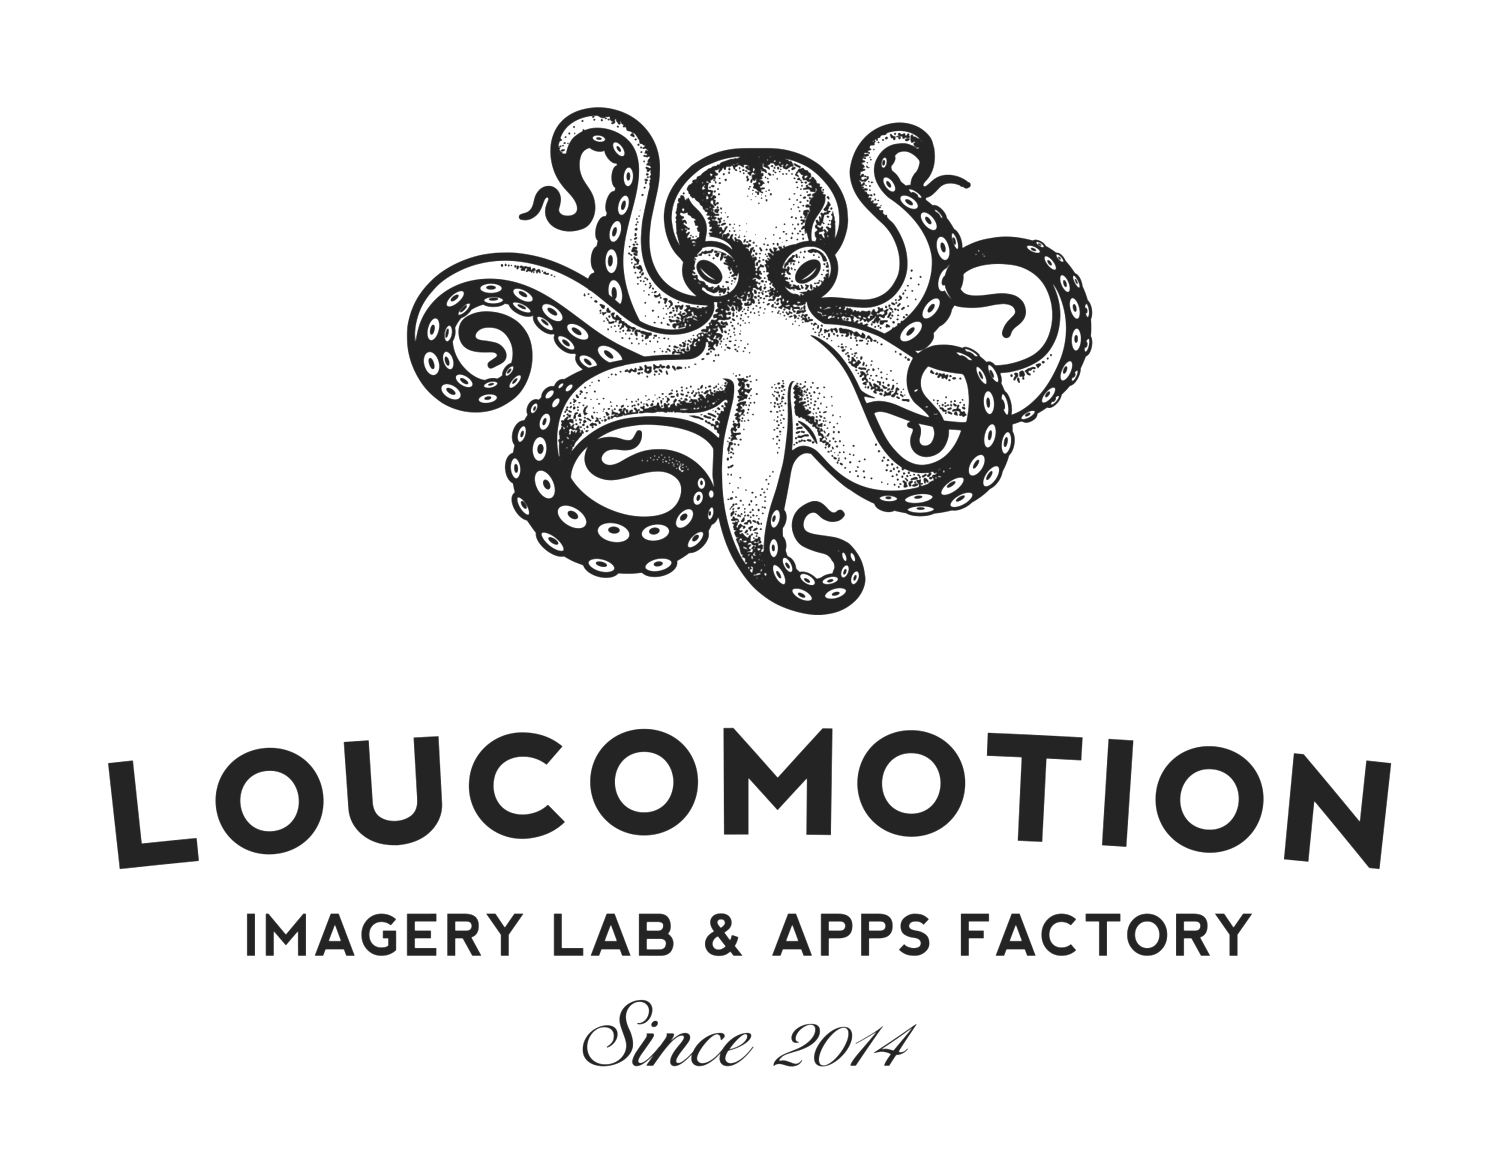 LOUCOMOTION